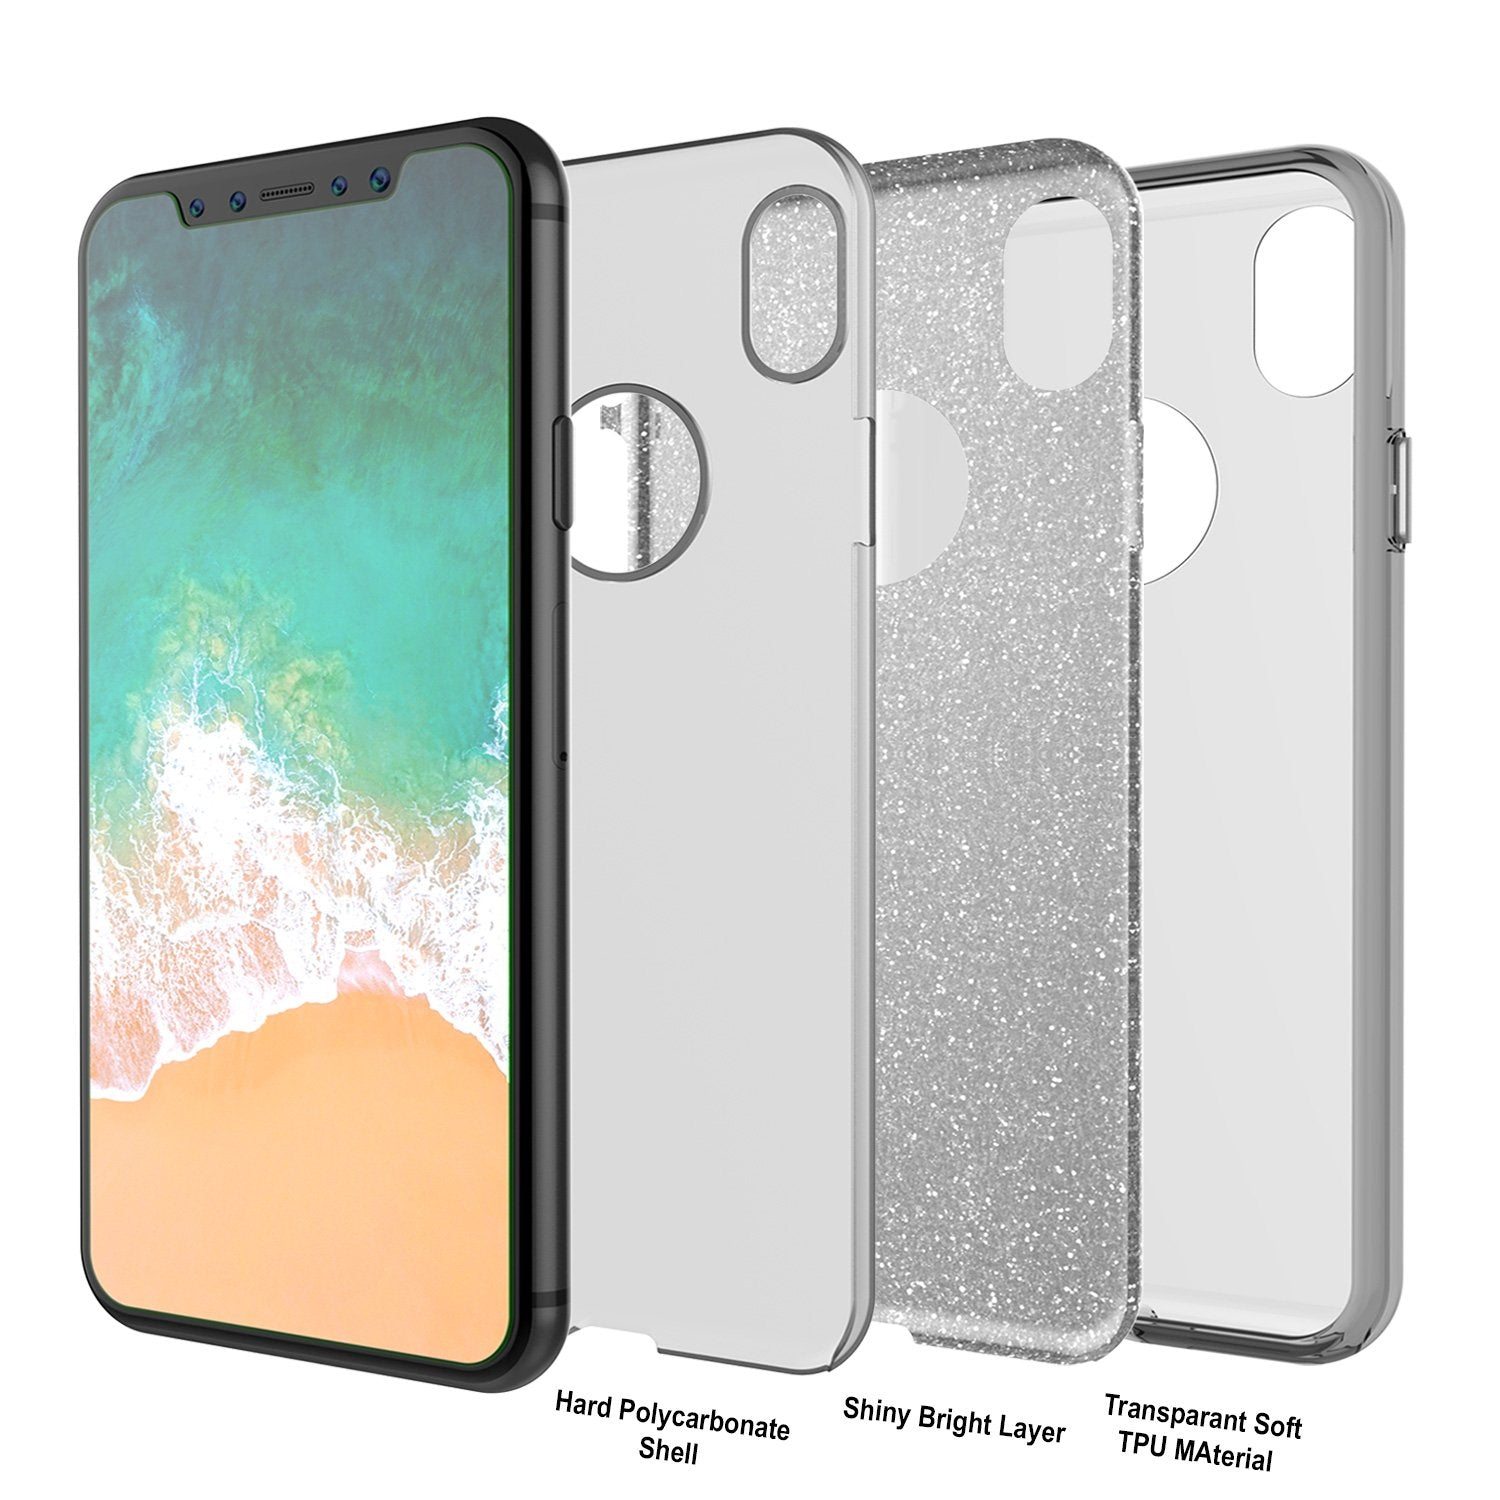 iPhone X Case, Punkcase Galactic 2.0 Series Ultra Slim w/ Tempered Glass Screen Protector | [Silver] - PunkCase NZ